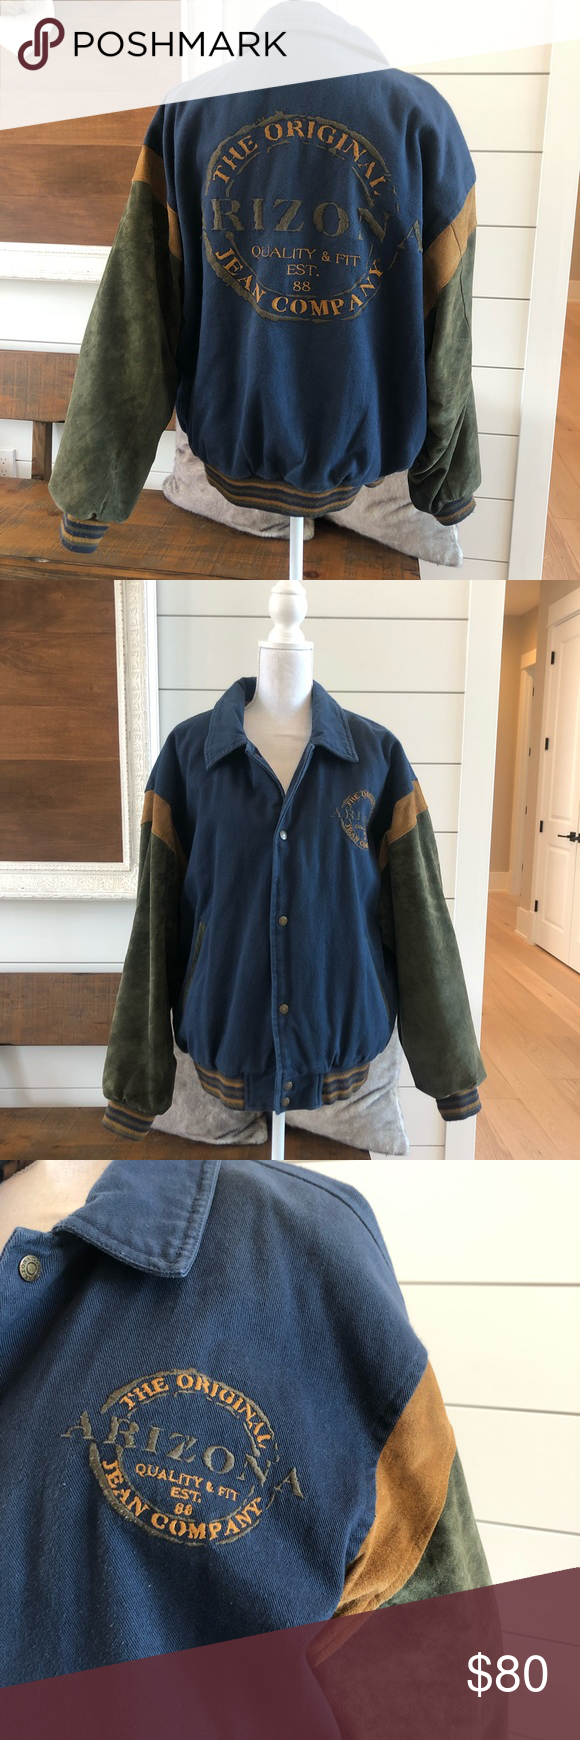 Vintage 90s Arizona Jean company varsity jacket Vintage 90s Arizona Jean company varsity jacket. Navy blue and green. Good vintage condition! Awesome hard to find jacket!! Vintage Jackets & Coats Bomber & Varsity #varsityjacketoutfit